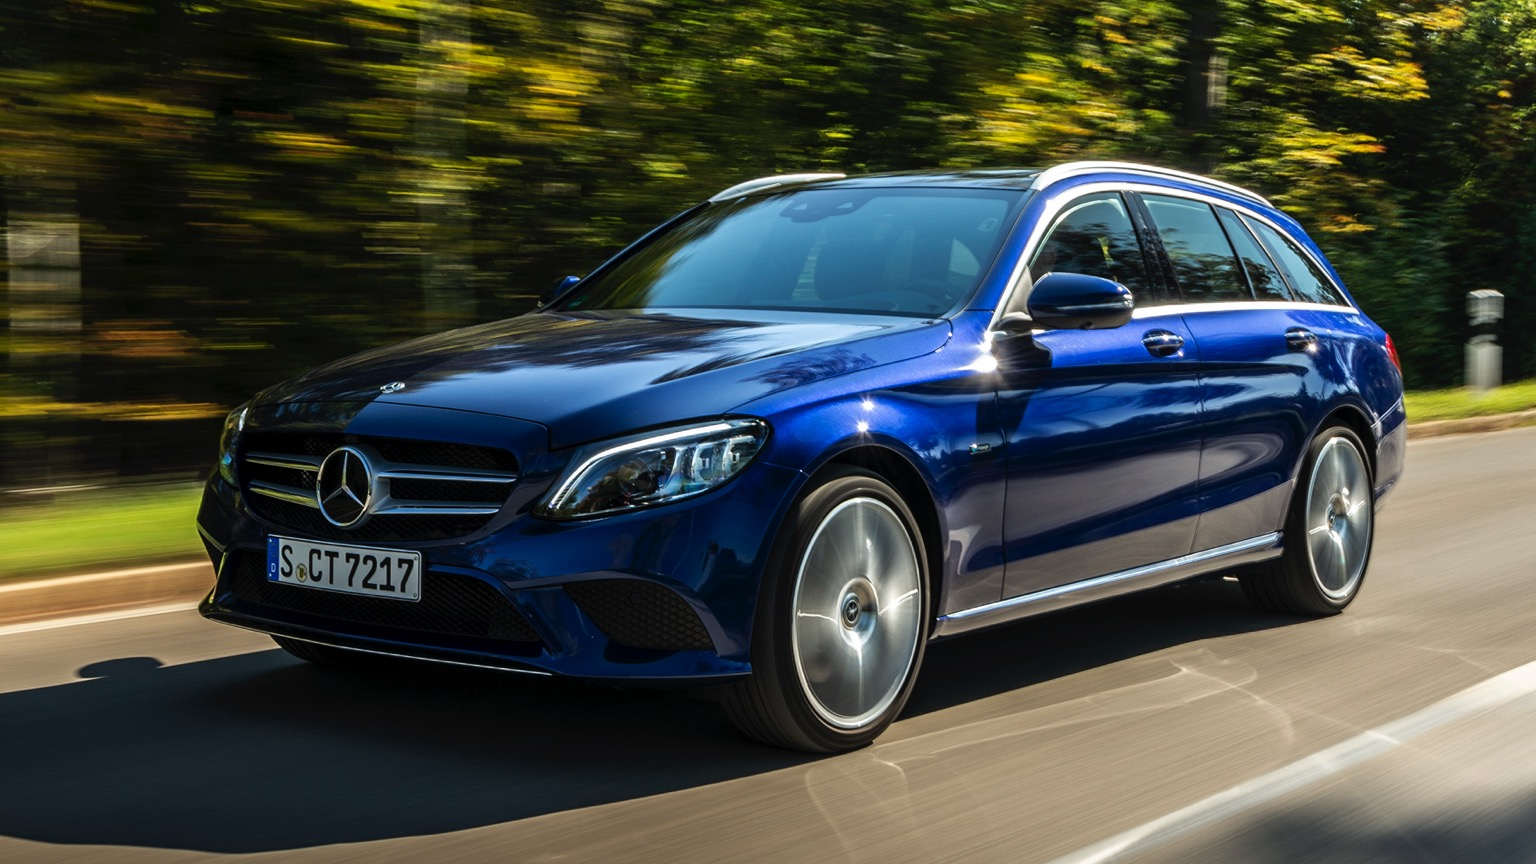 Mercedes C 300 e Estate (2019)